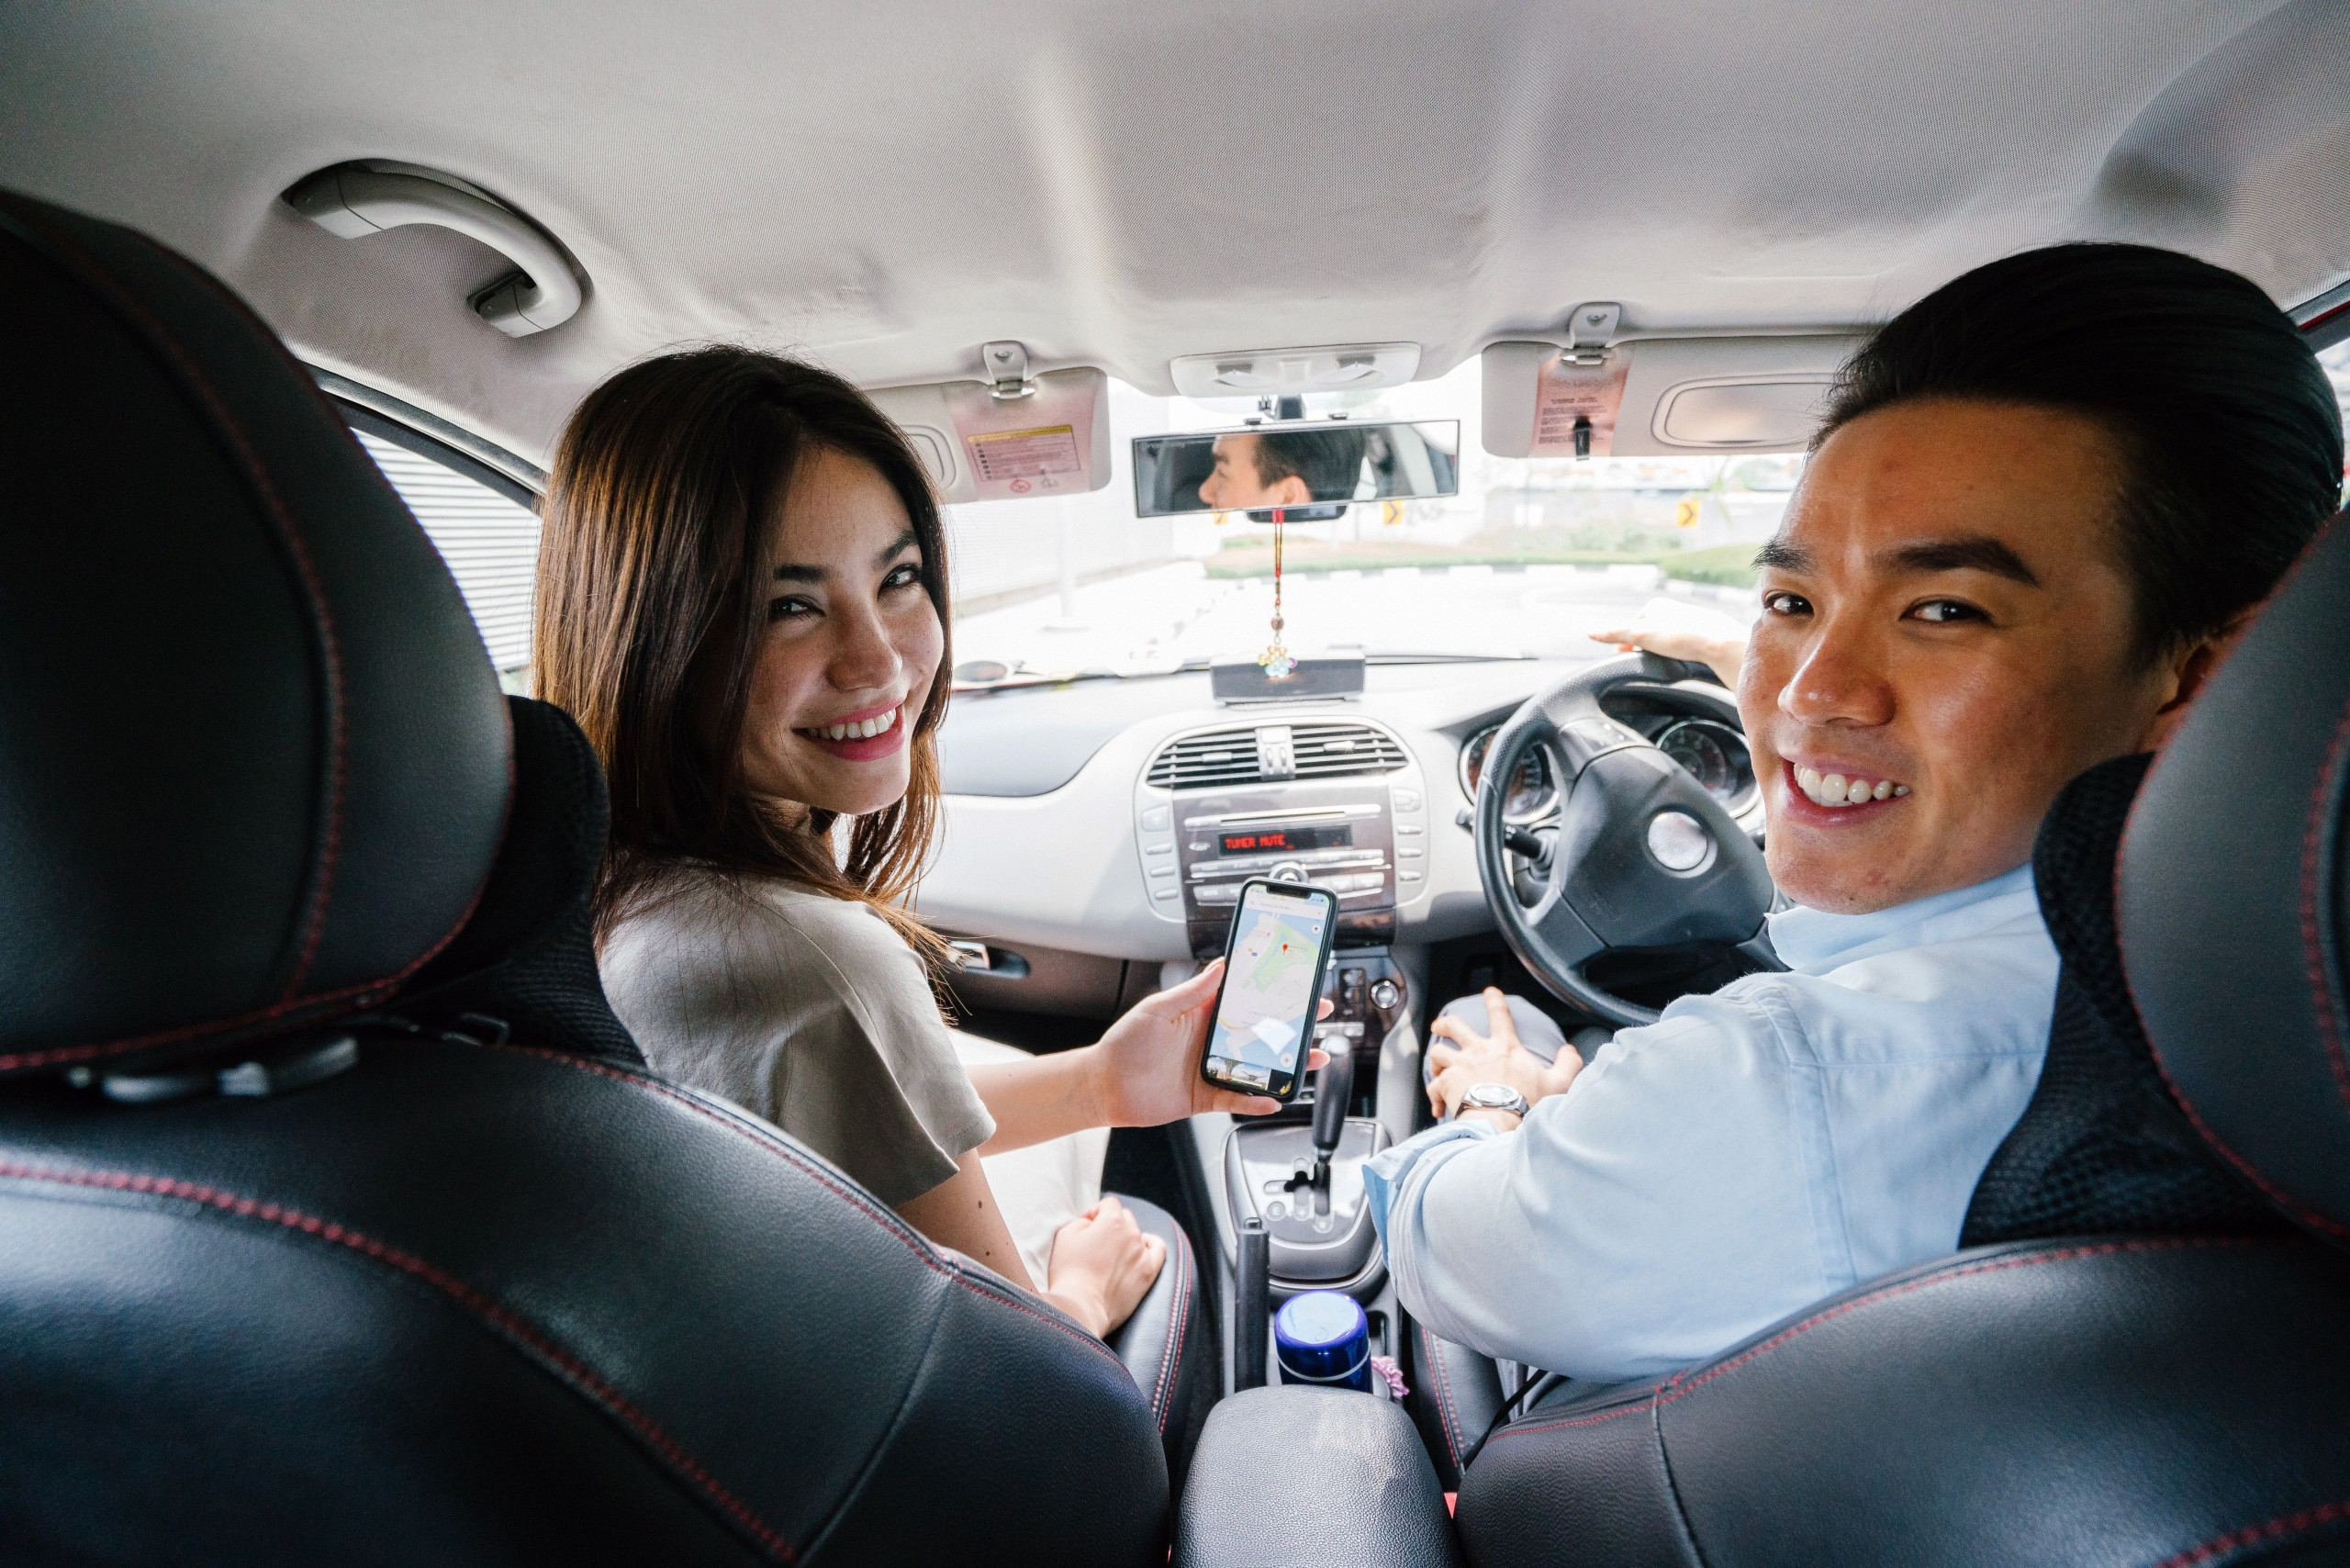 Carpooling reduces social isolation, and can make you happier.